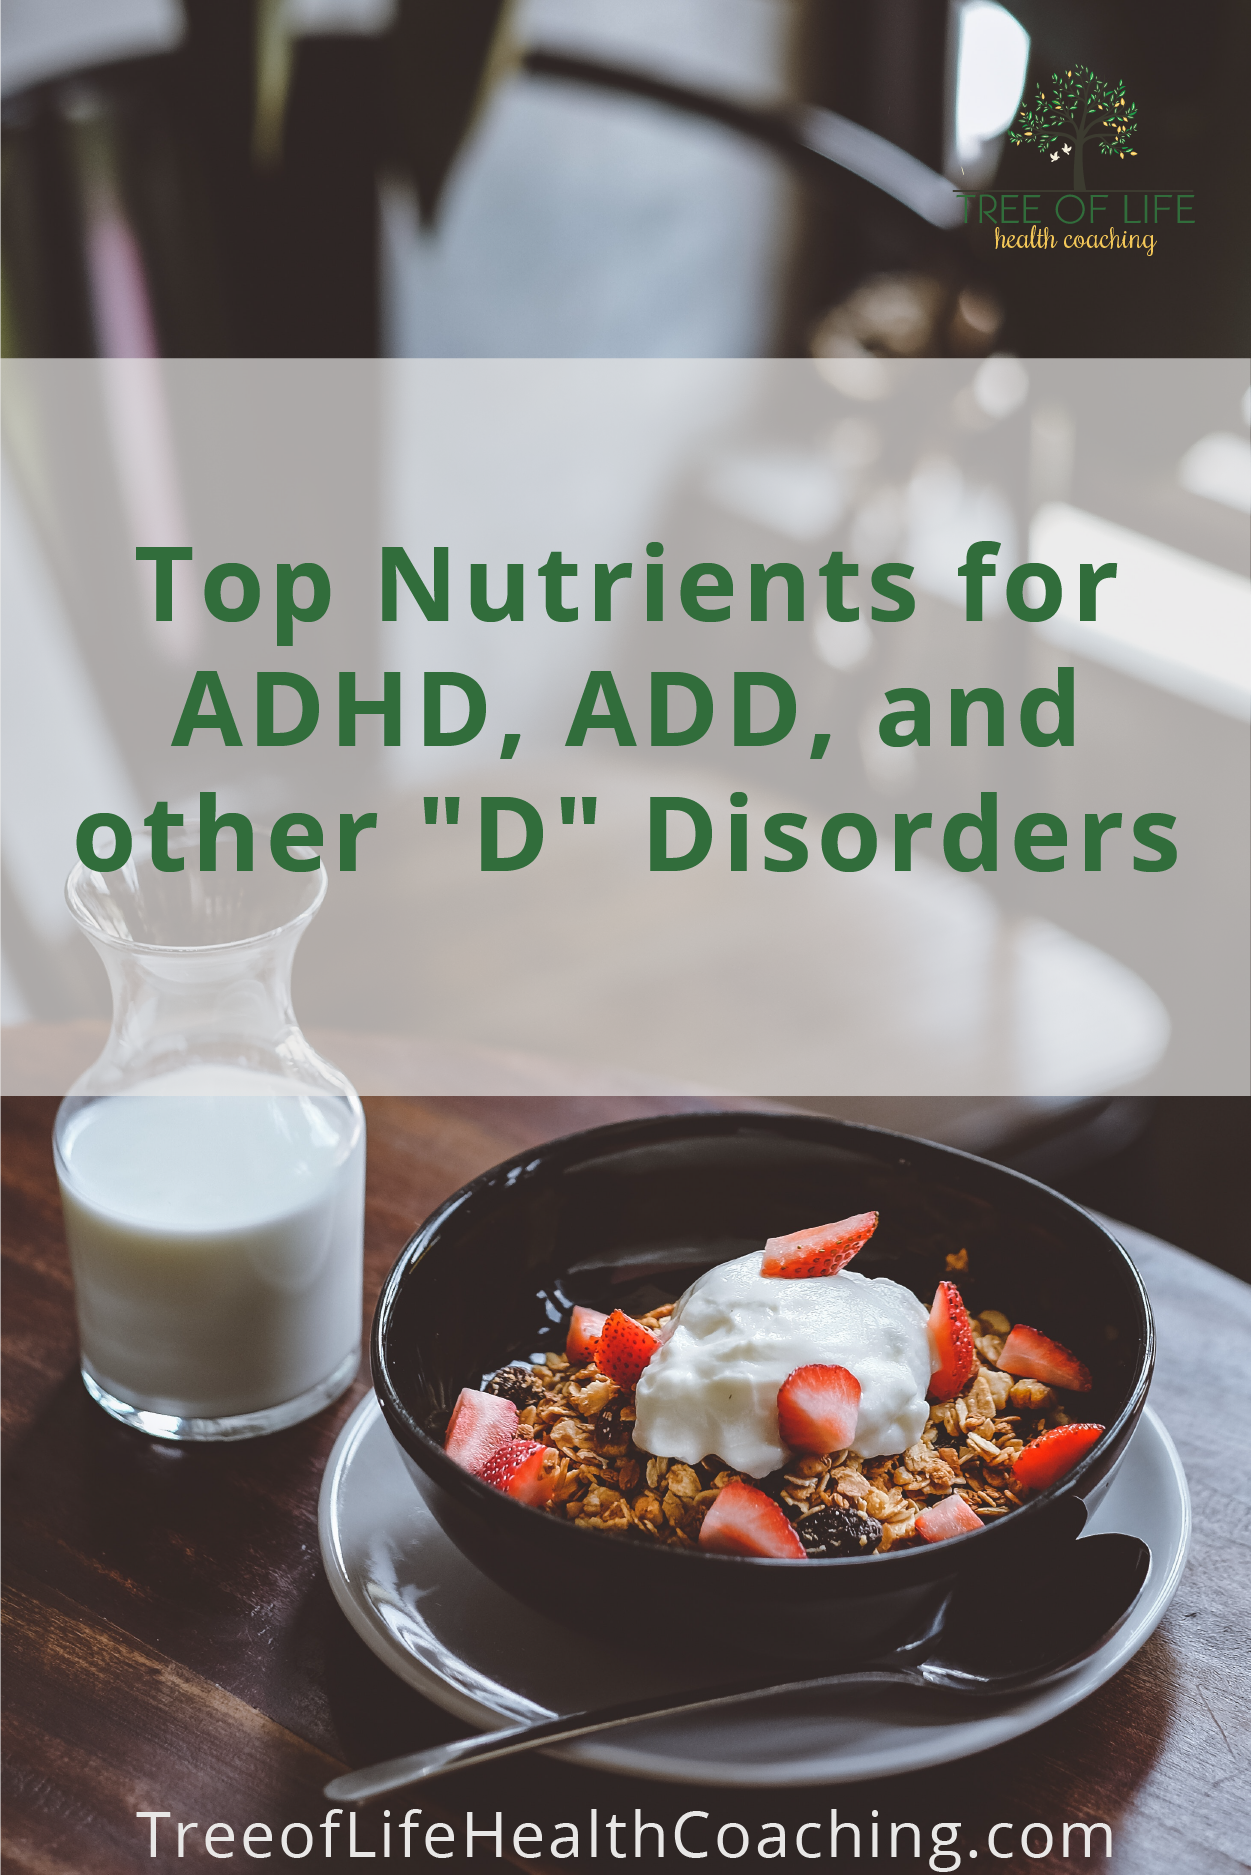 Supplements for ADHD